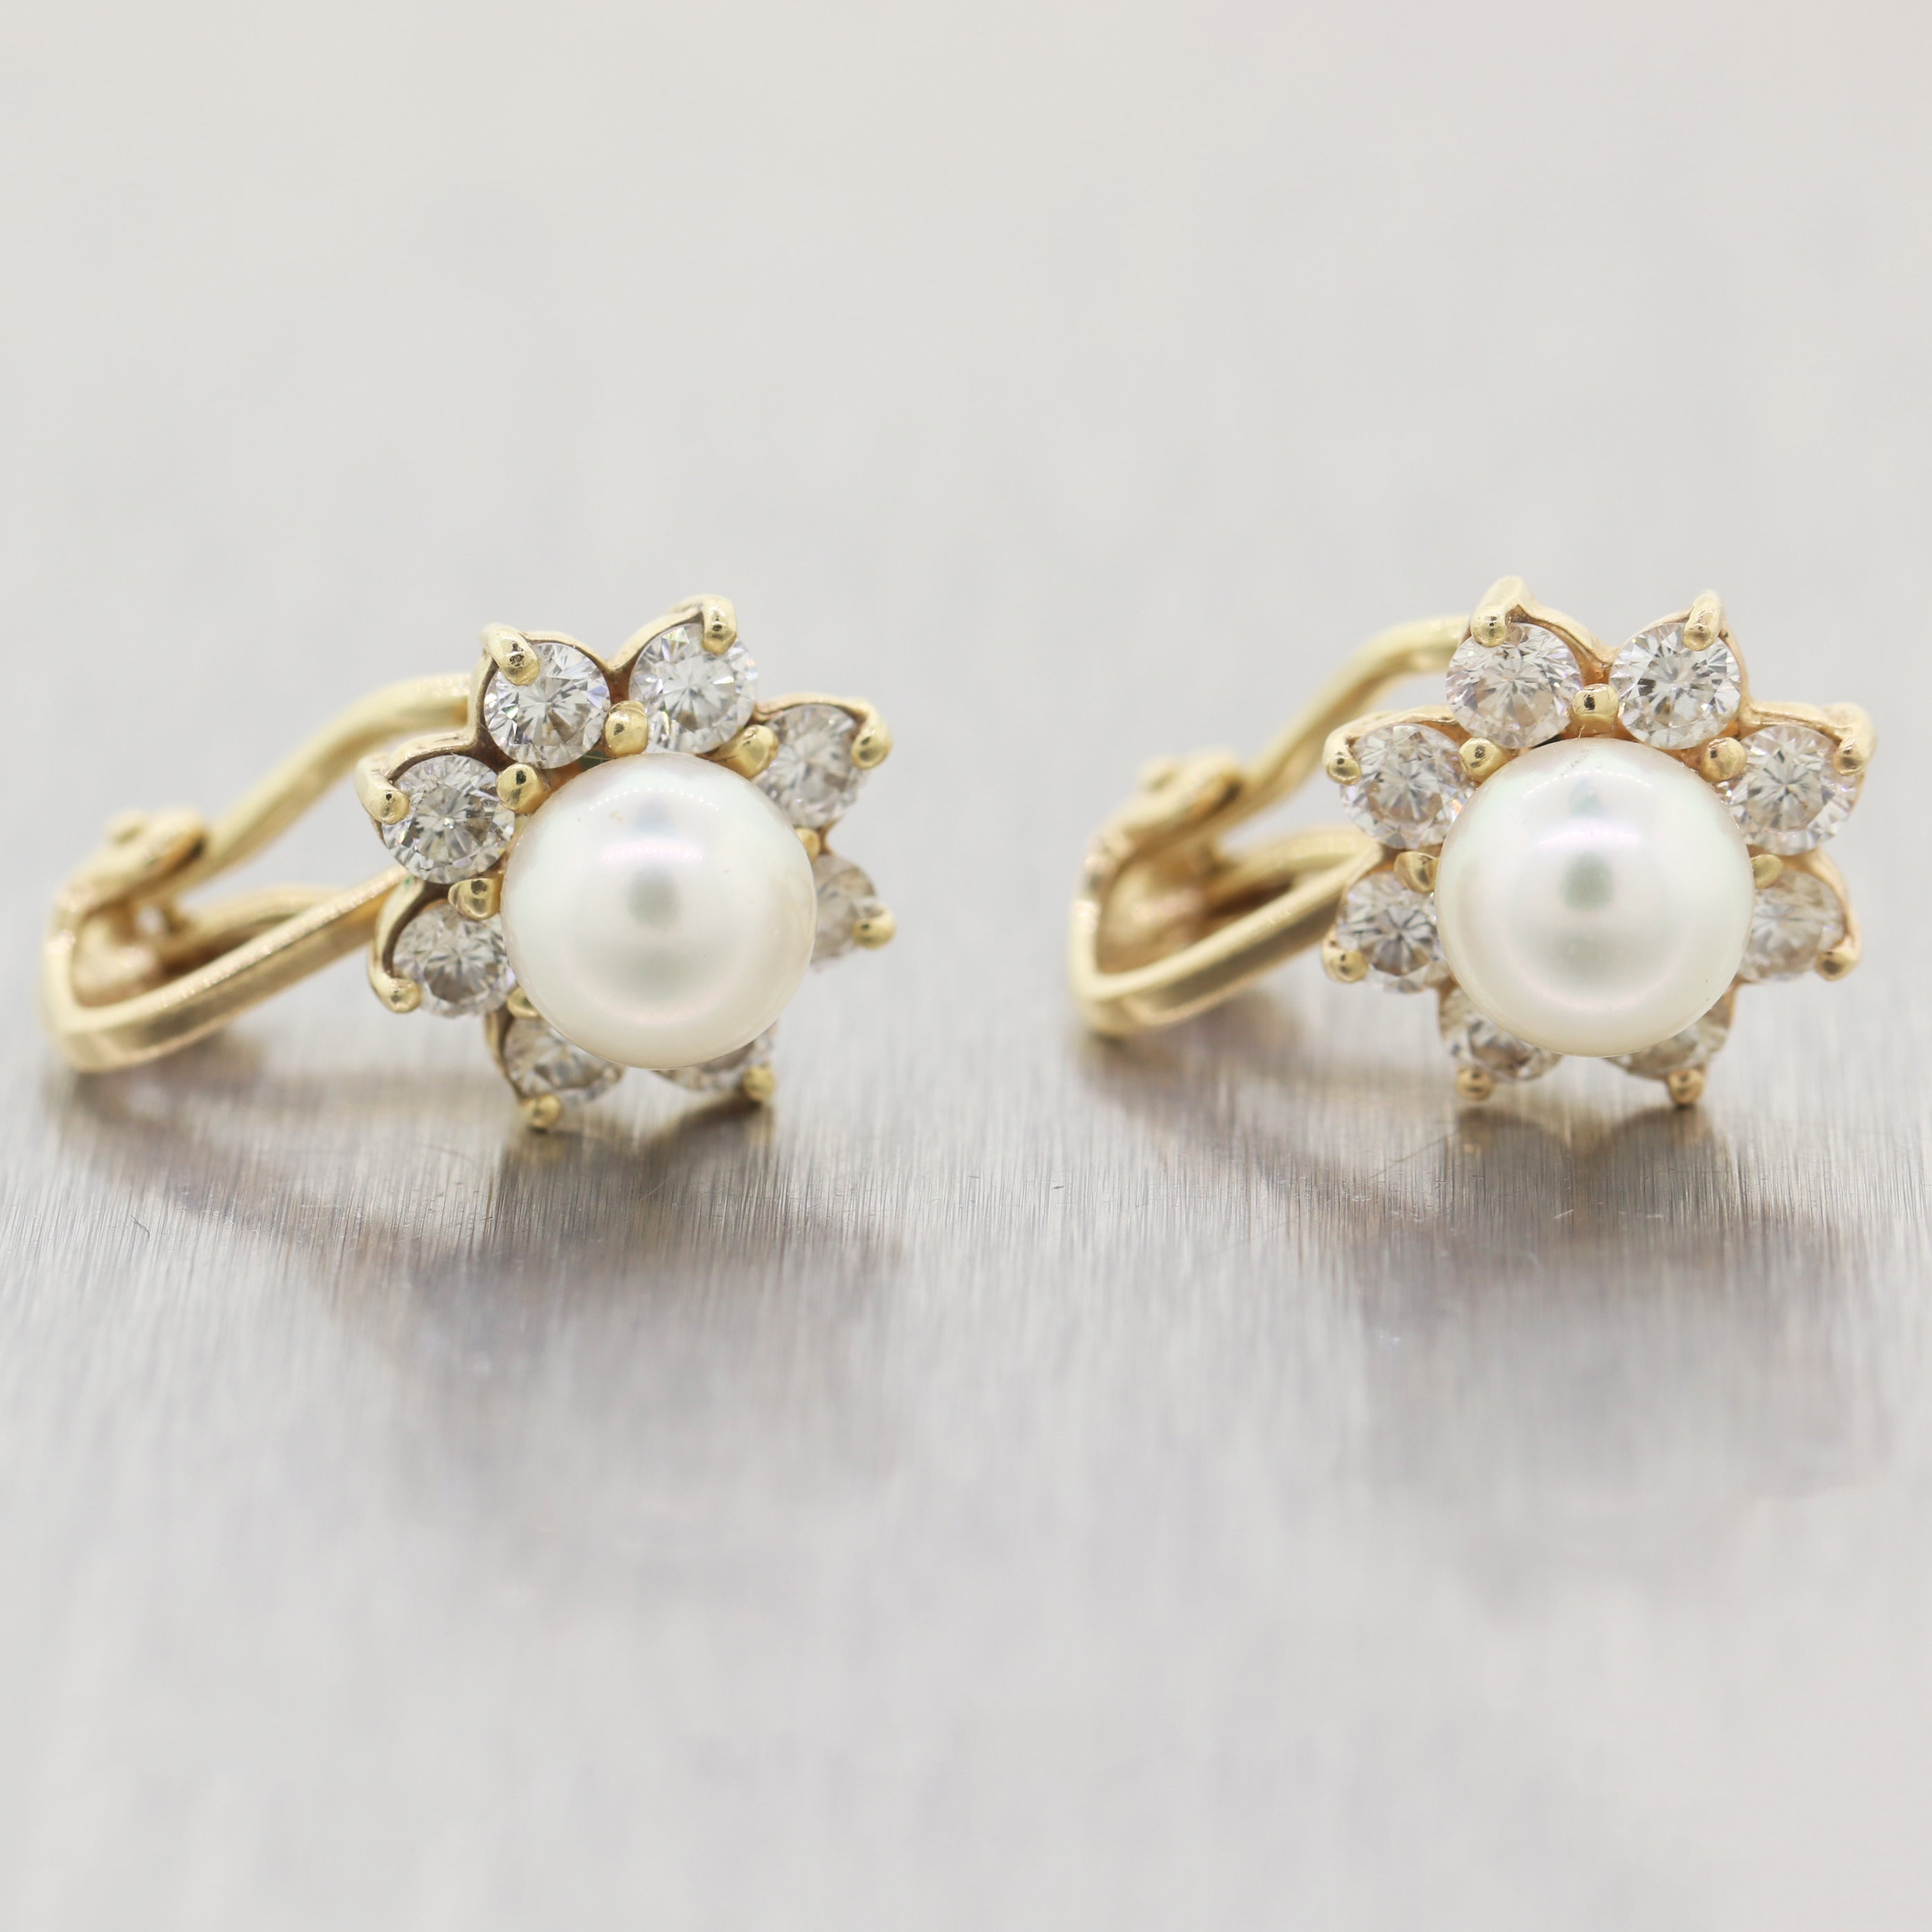 Vintage Estate 14k Yellow Gold Pearl & 1.50ctw Diamond Earrings